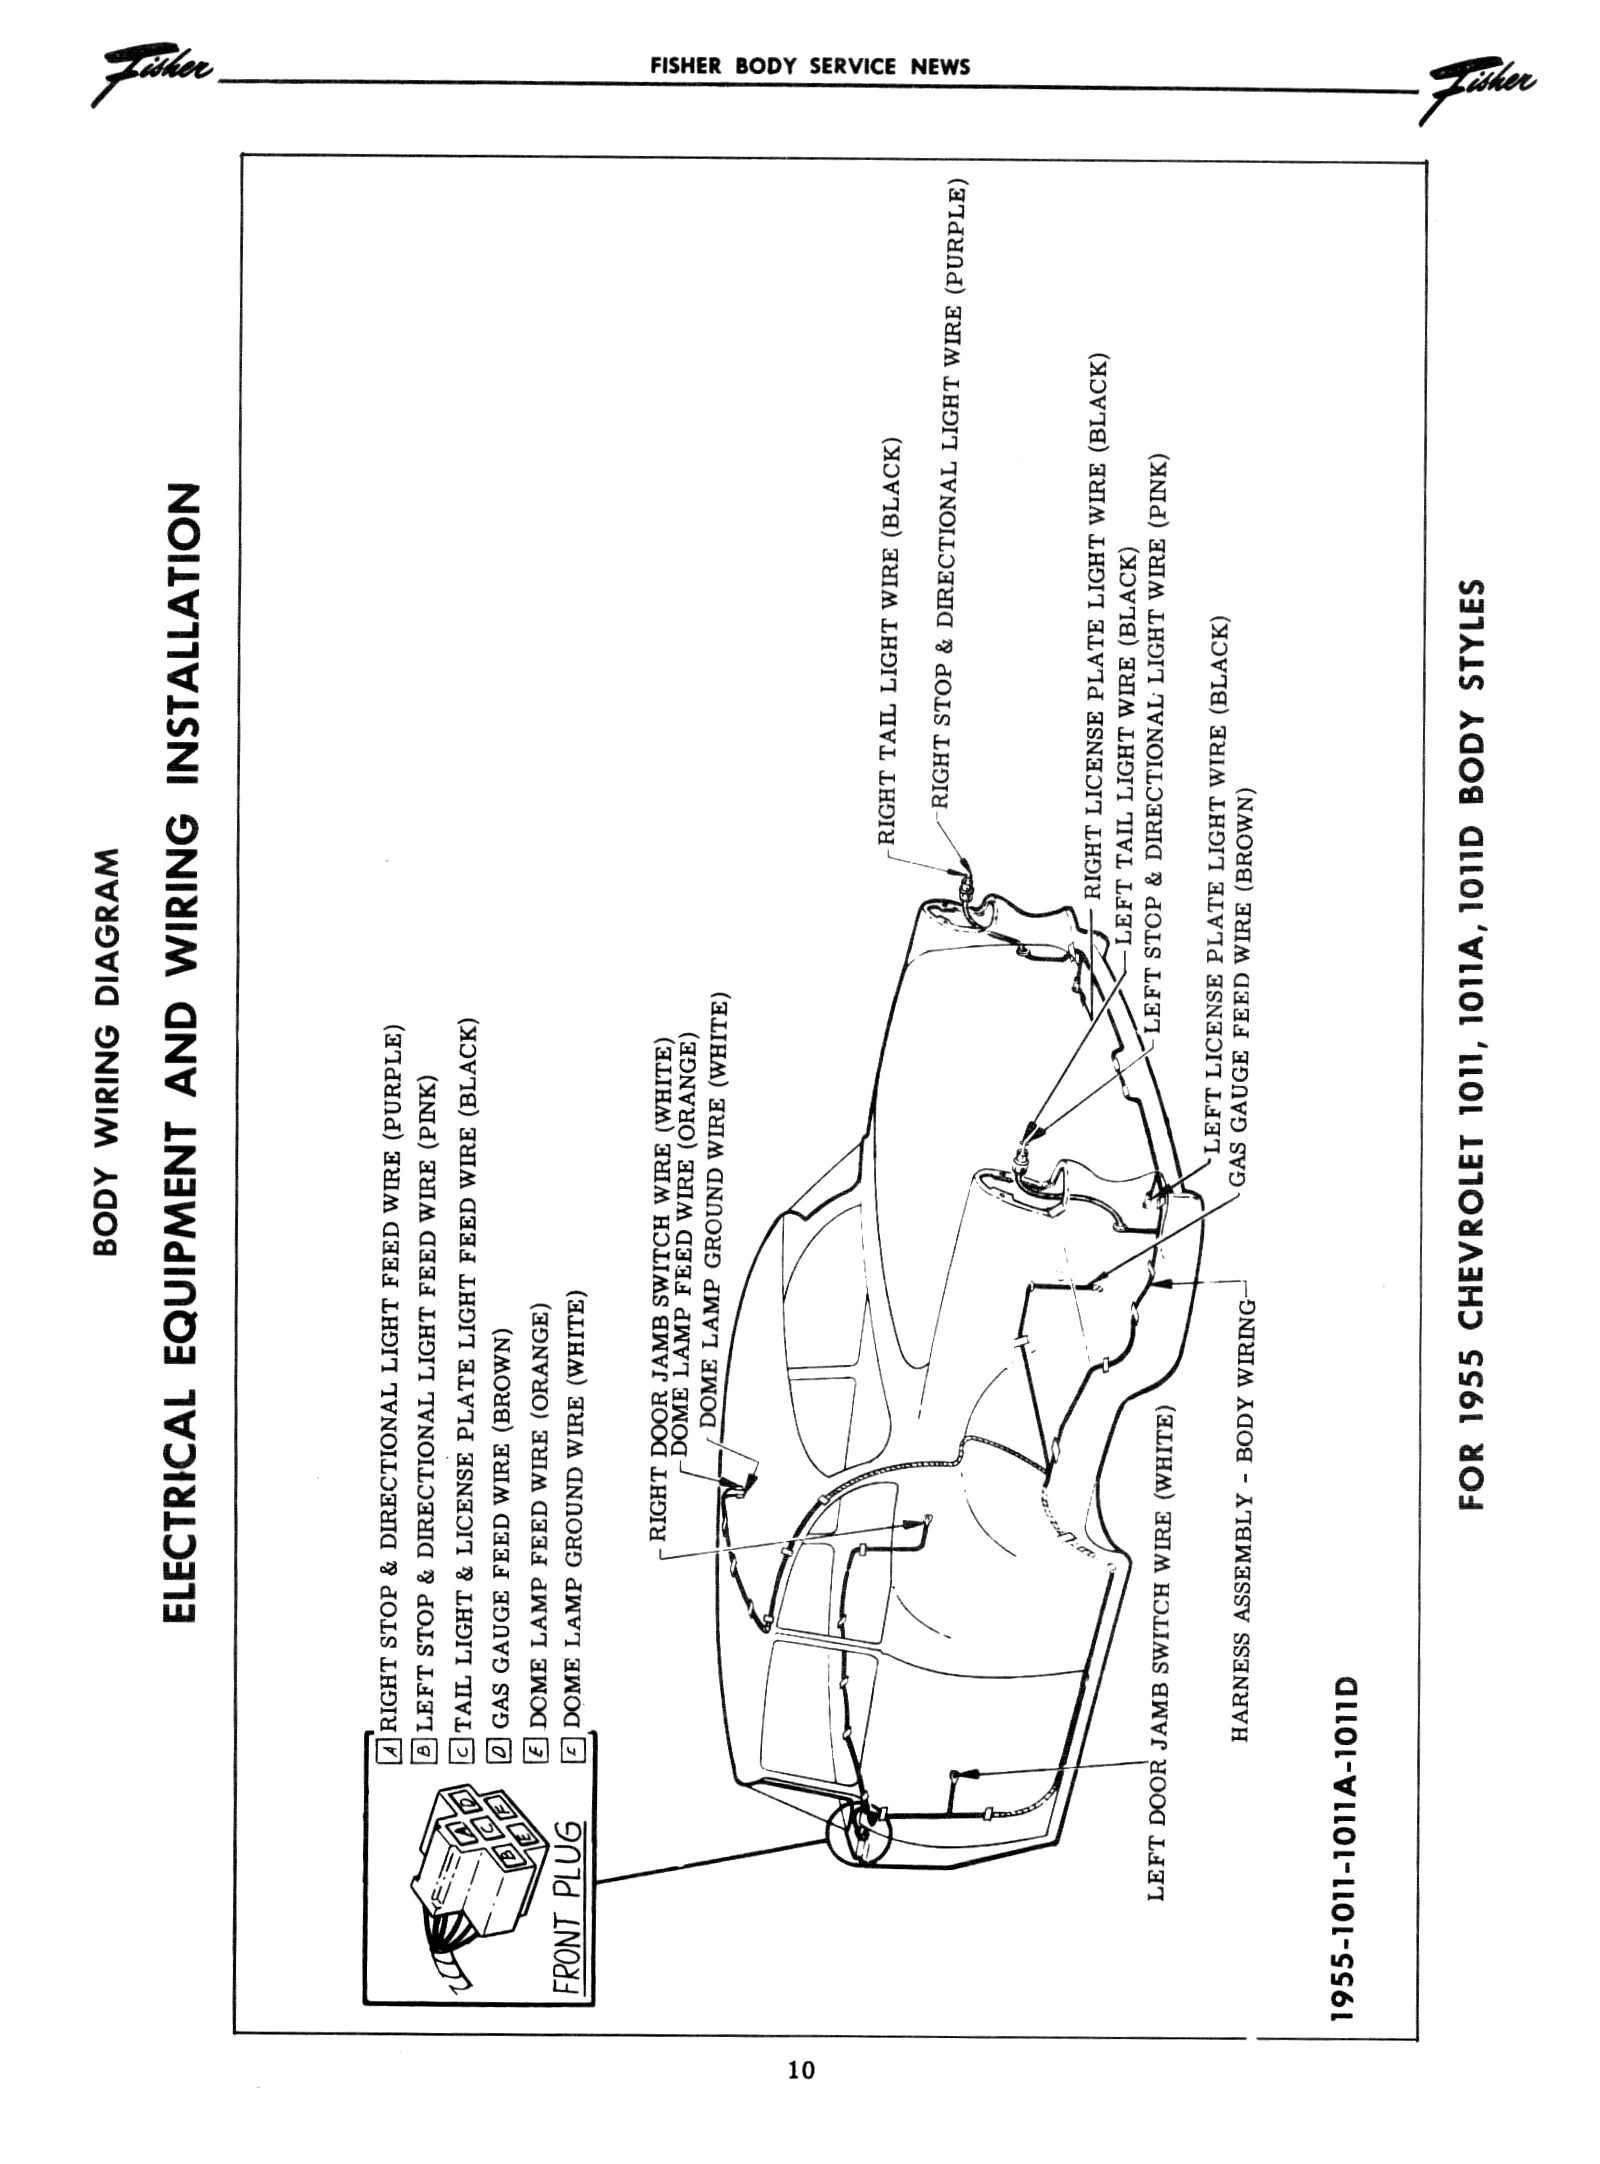 Wiring Diagram 55 Chevy C10